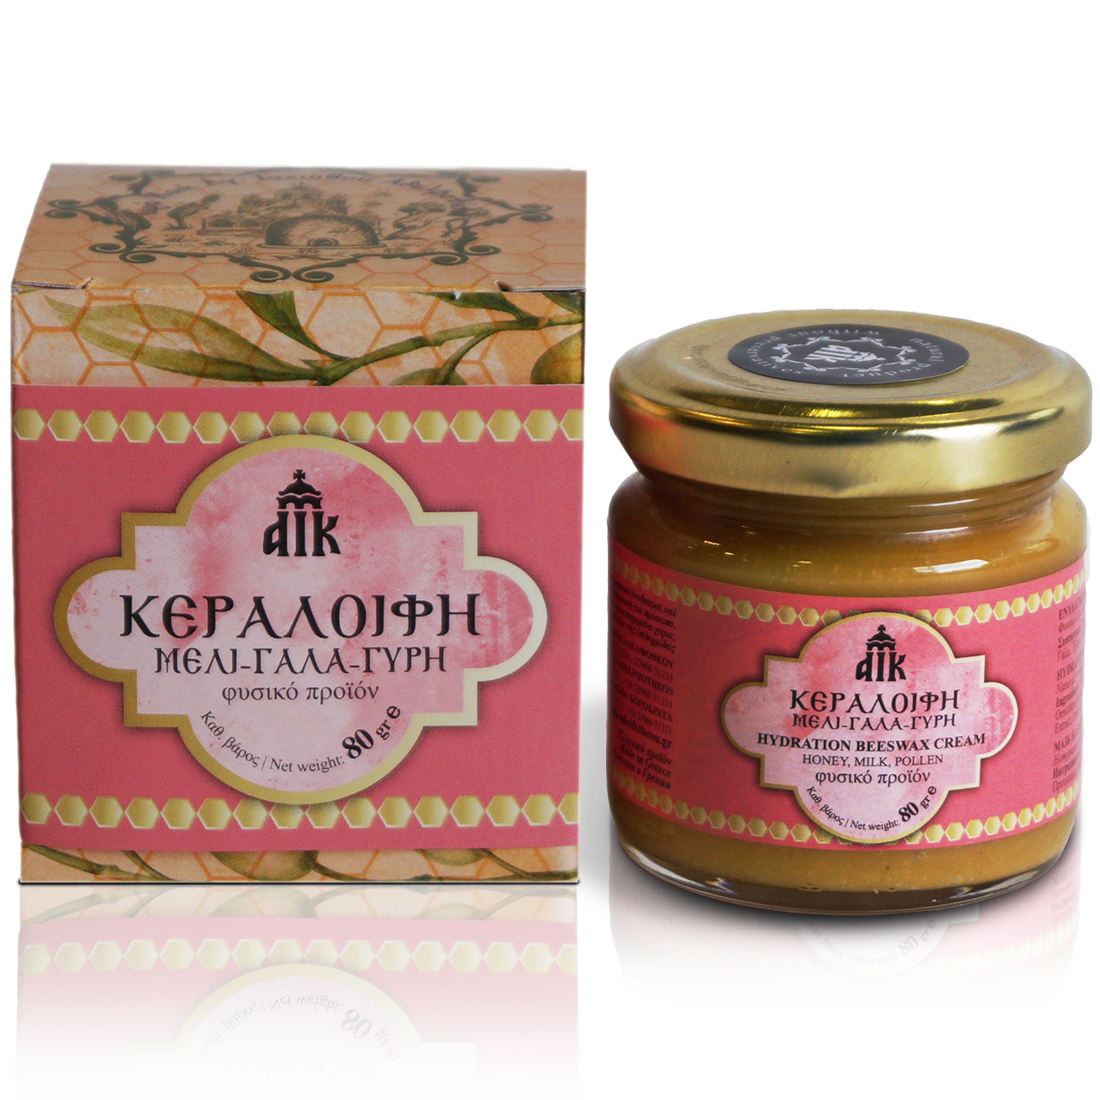 This wax cream is prepared at the Holy Monastery of Saint James the Just. Rich in natural nutrients, antioxidants and moisturizing ingredients, ideal and effective for dry elbows, heels, cracked, dry and chapped hands. It is available in 80gr and 35gr. / Η κεραλοιφή αυτή είναι πλούσια σε φυσικά θρεπτικά, ενυδατικά και αντιοξειδωτικά υλικά, ιδανική και αποτελεσματική για αγκώνες, φτέρνες, σκασμένα, ξηρά και ταλαιπωρημένα χέρια. Διατίθεται σε 80γρ.και 35γρ.